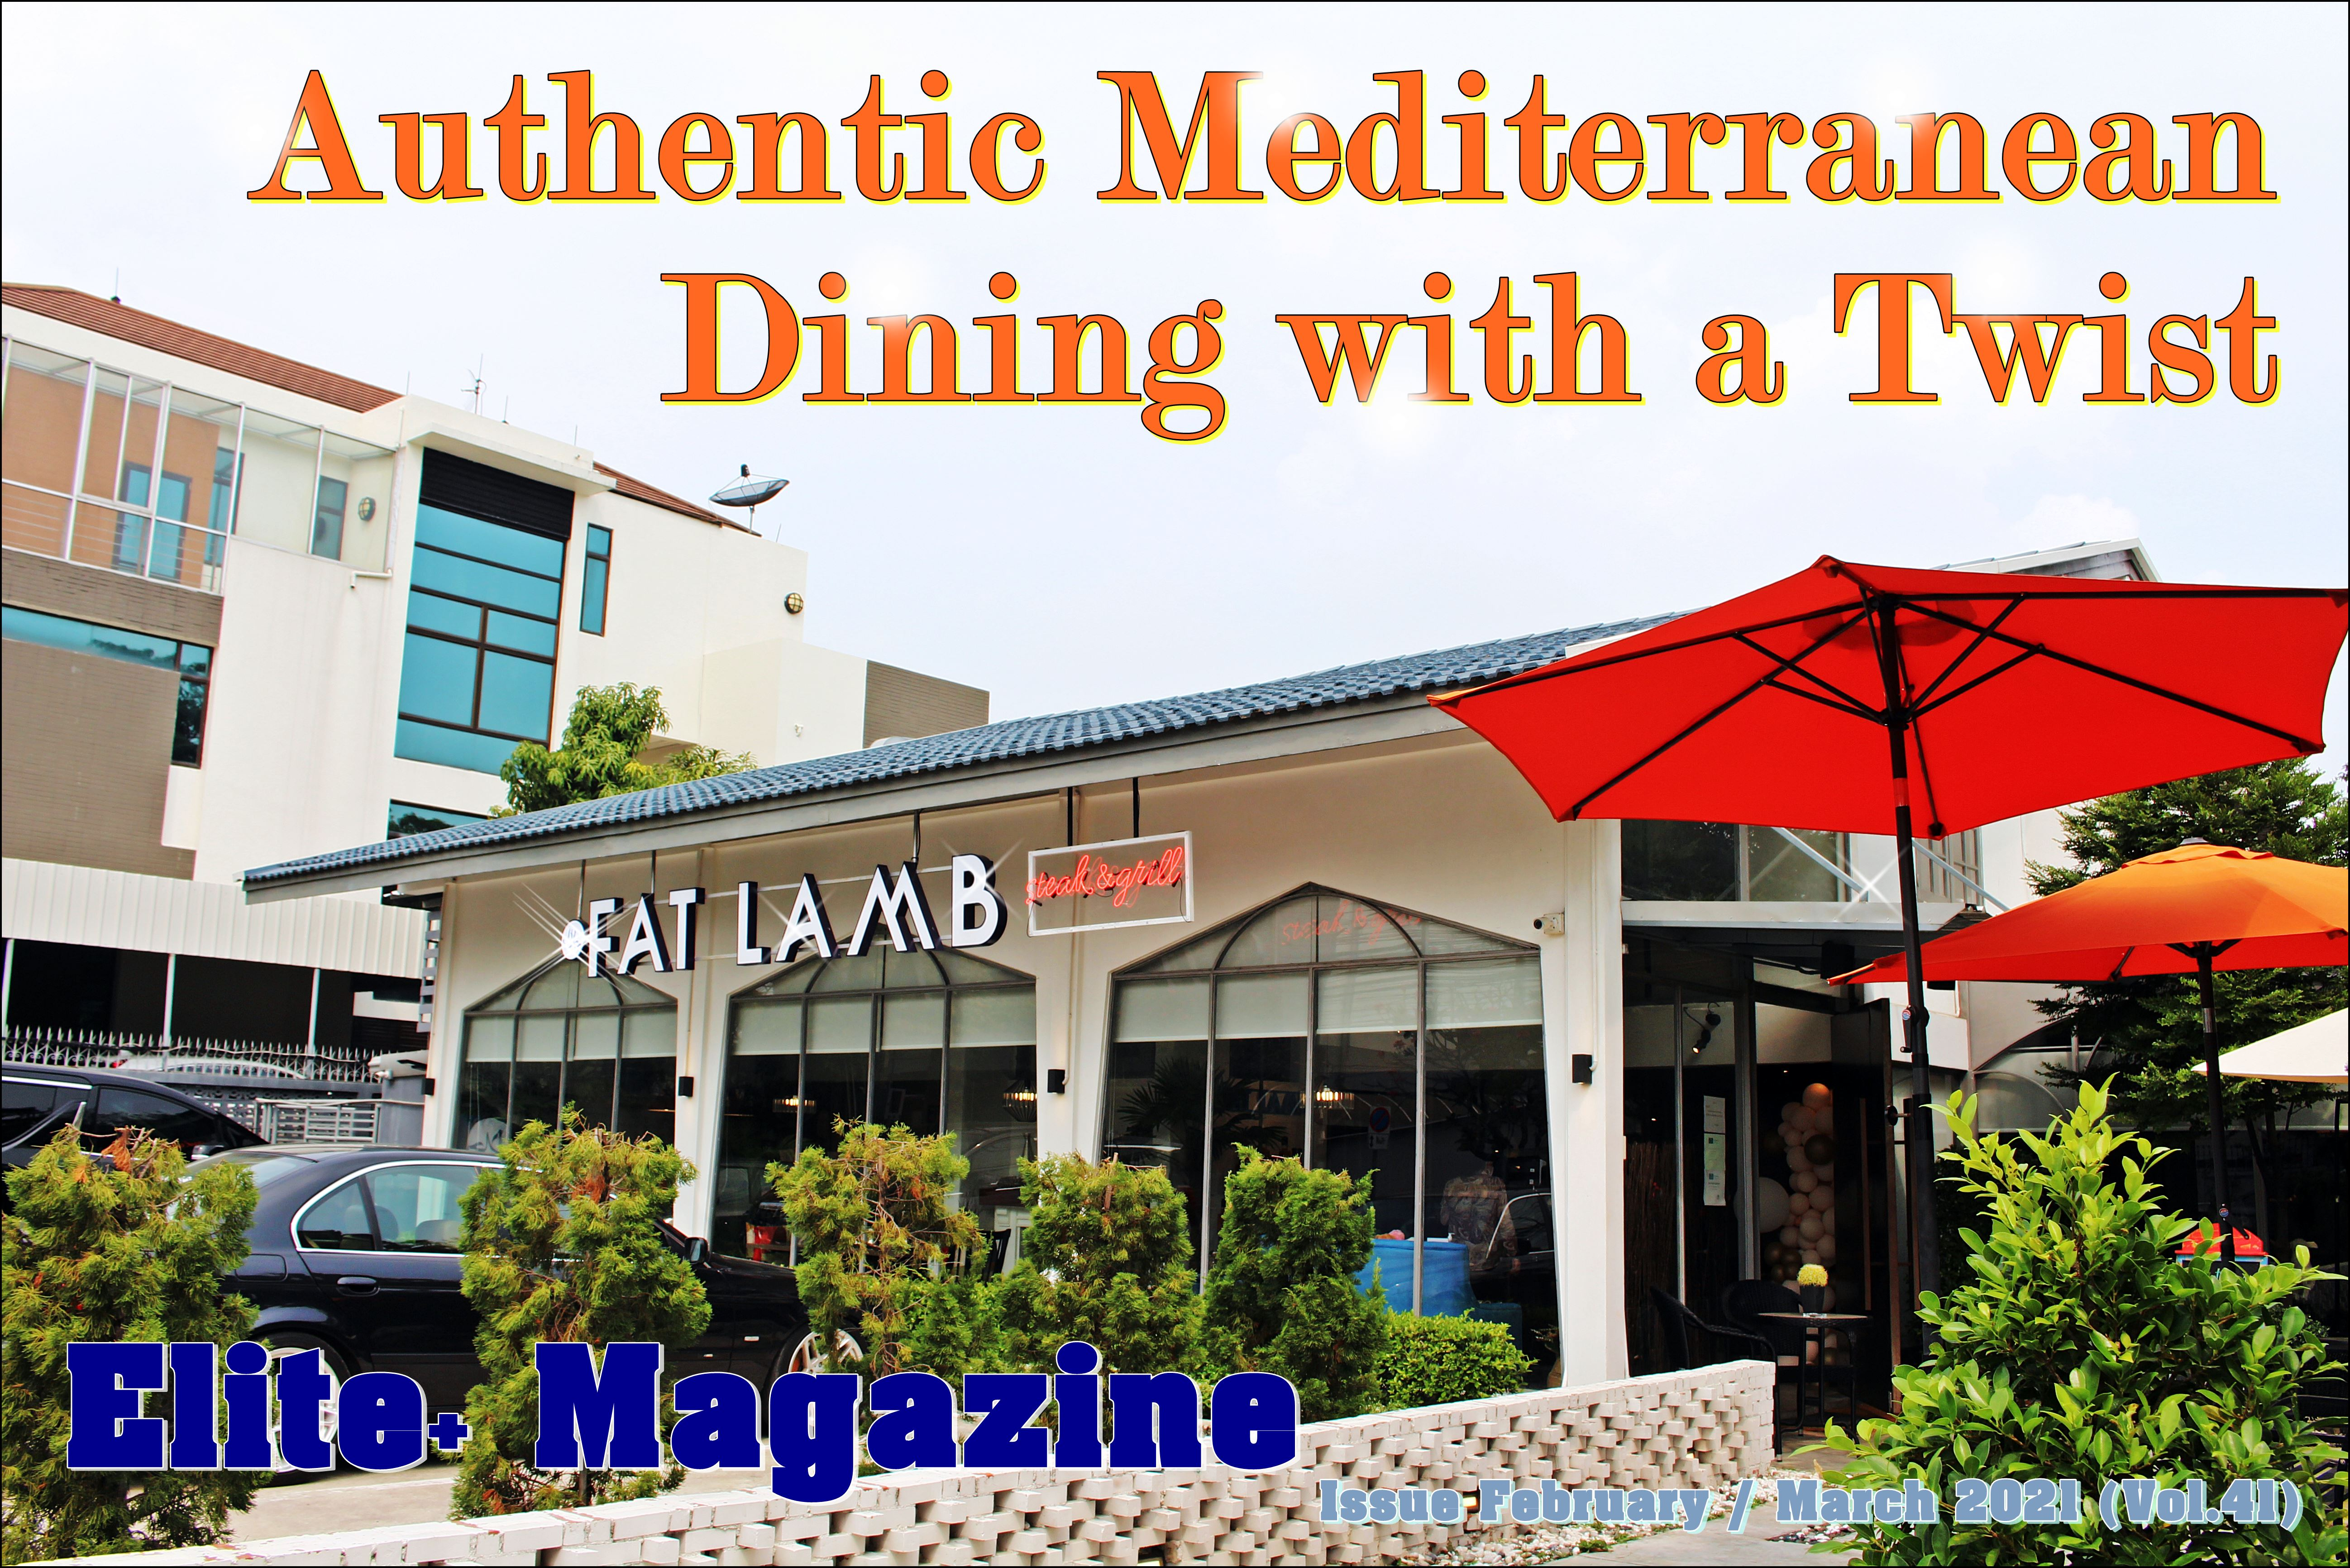 Authentic Mediterranean Dining with a Twist